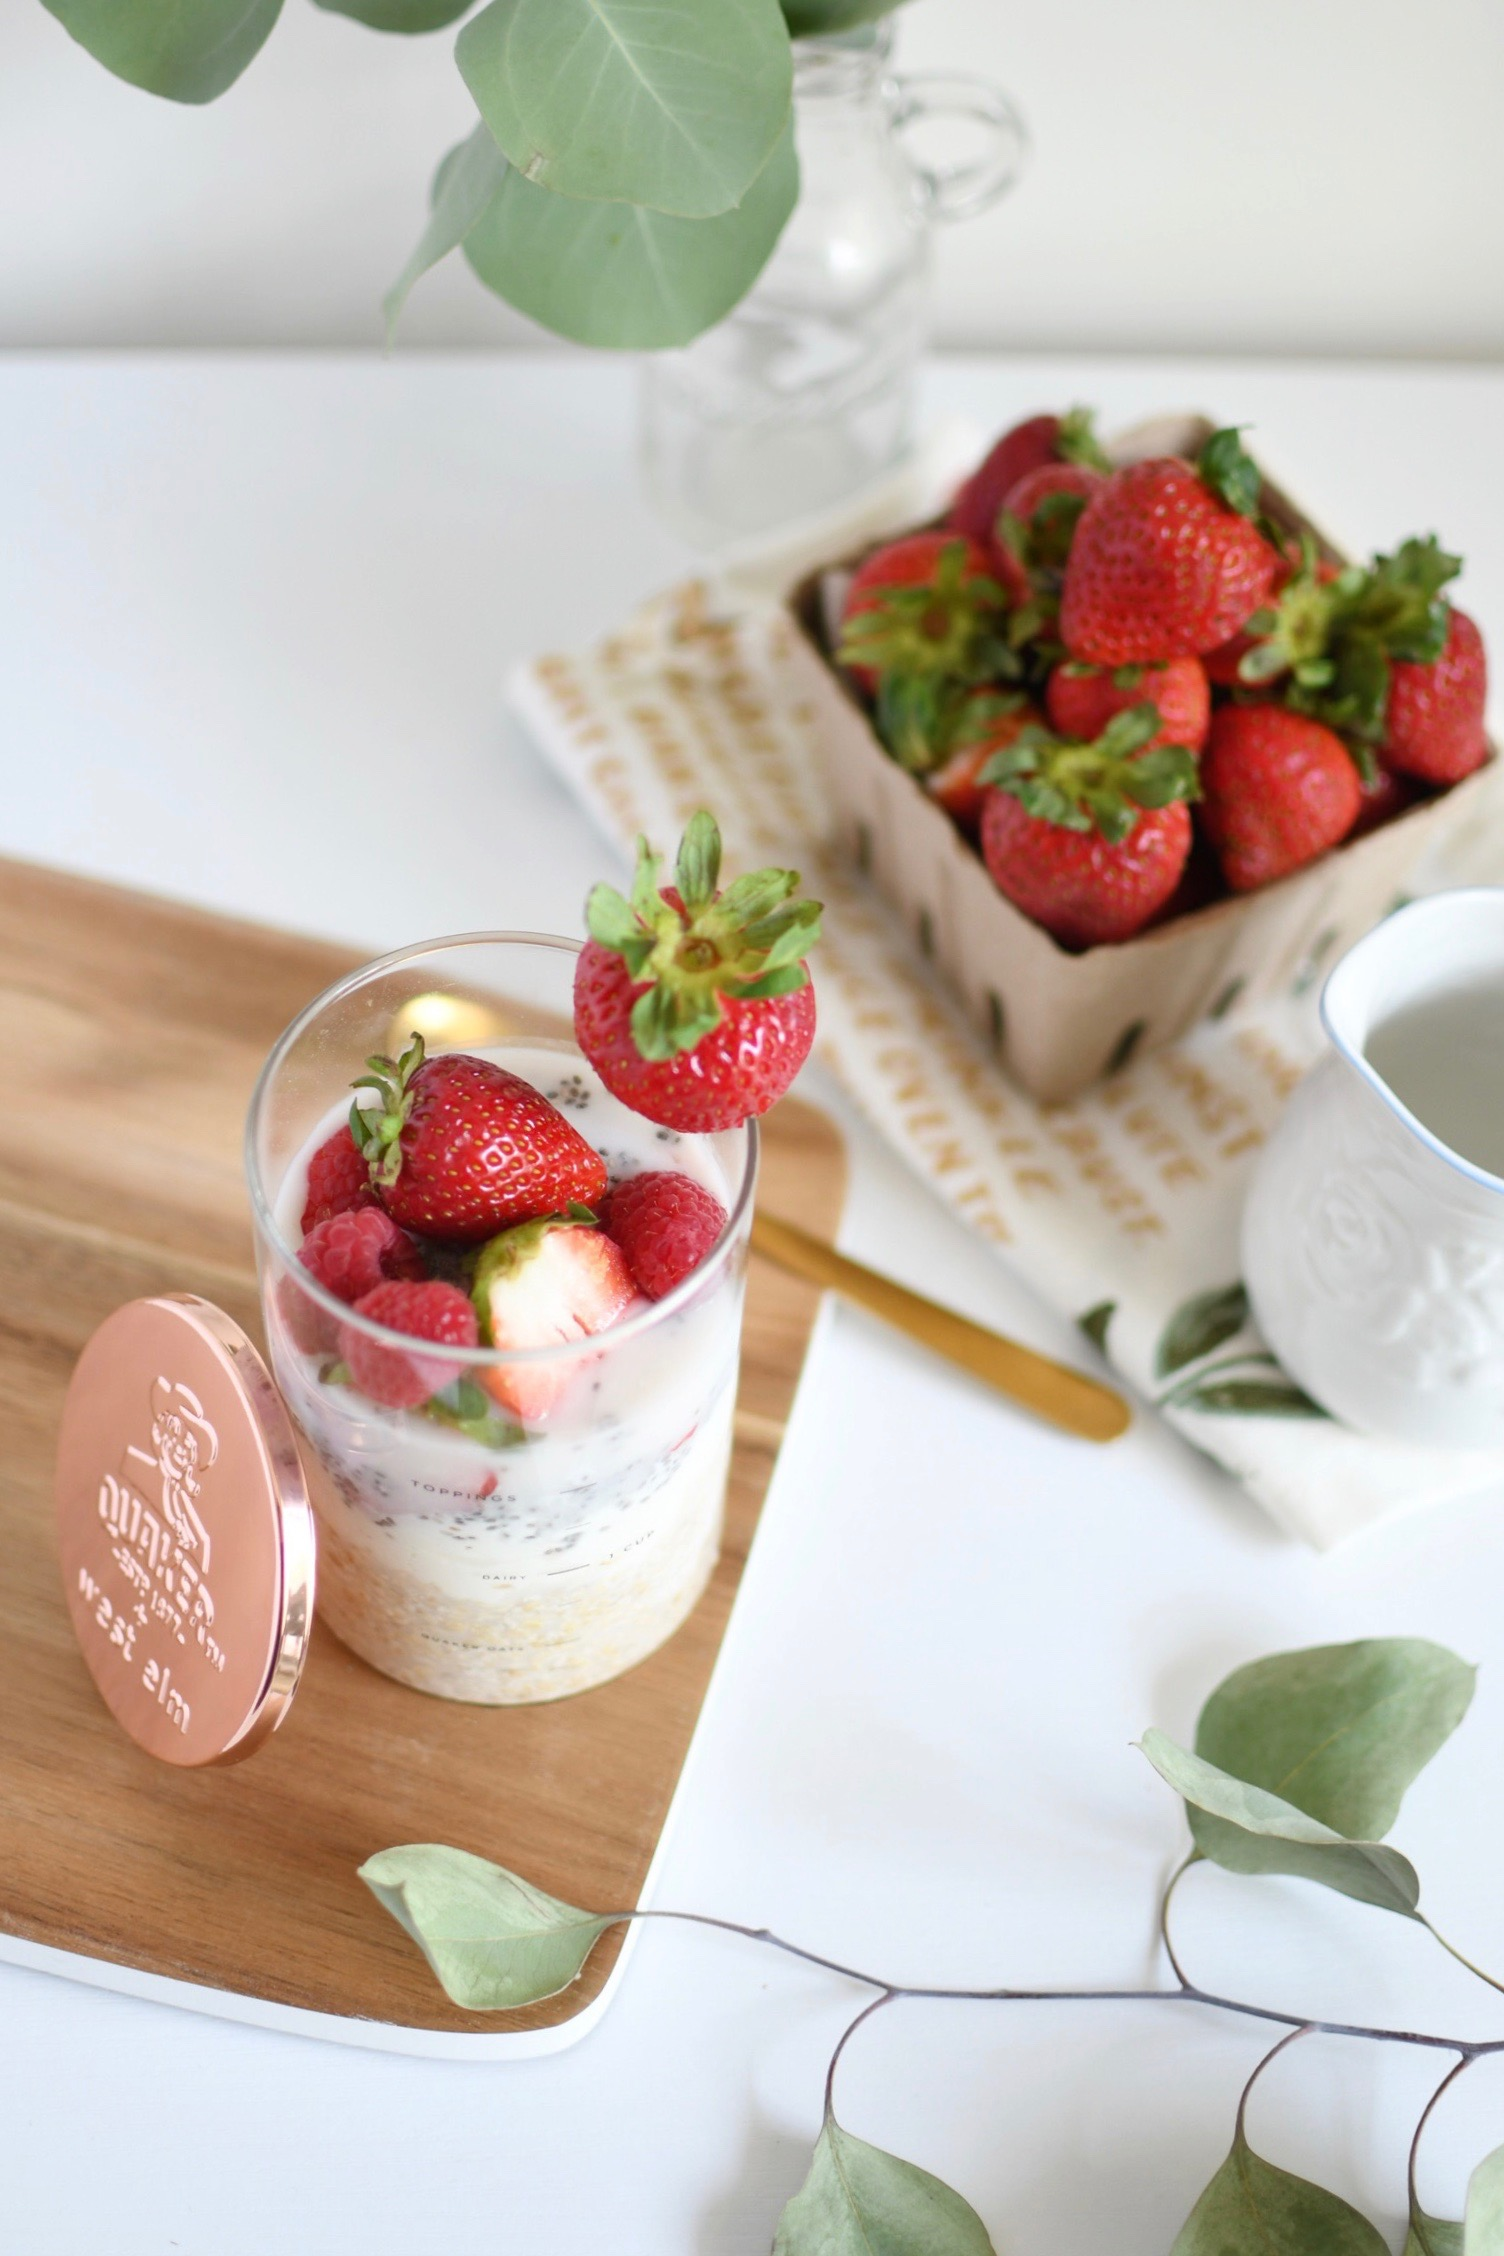 Easy And Healthy Overnight Oats Recipe